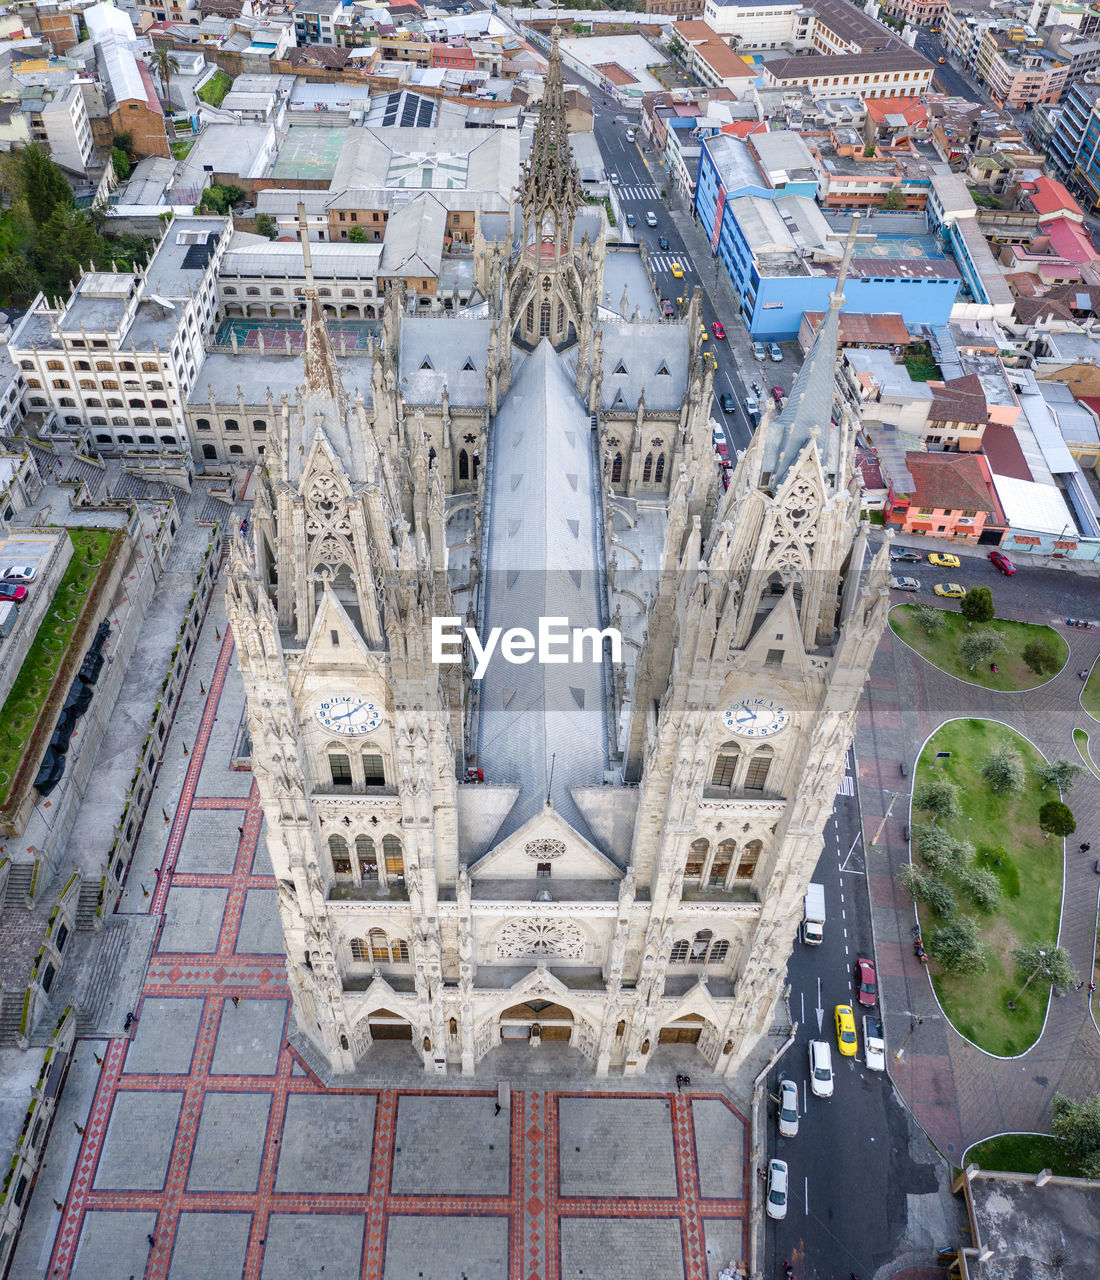 architecture, city, building exterior, built structure, high angle view, transportation, day, building, mode of transportation, travel, travel destinations, aerial view, no people, road, water, tourism, cityscape, street, outdoors